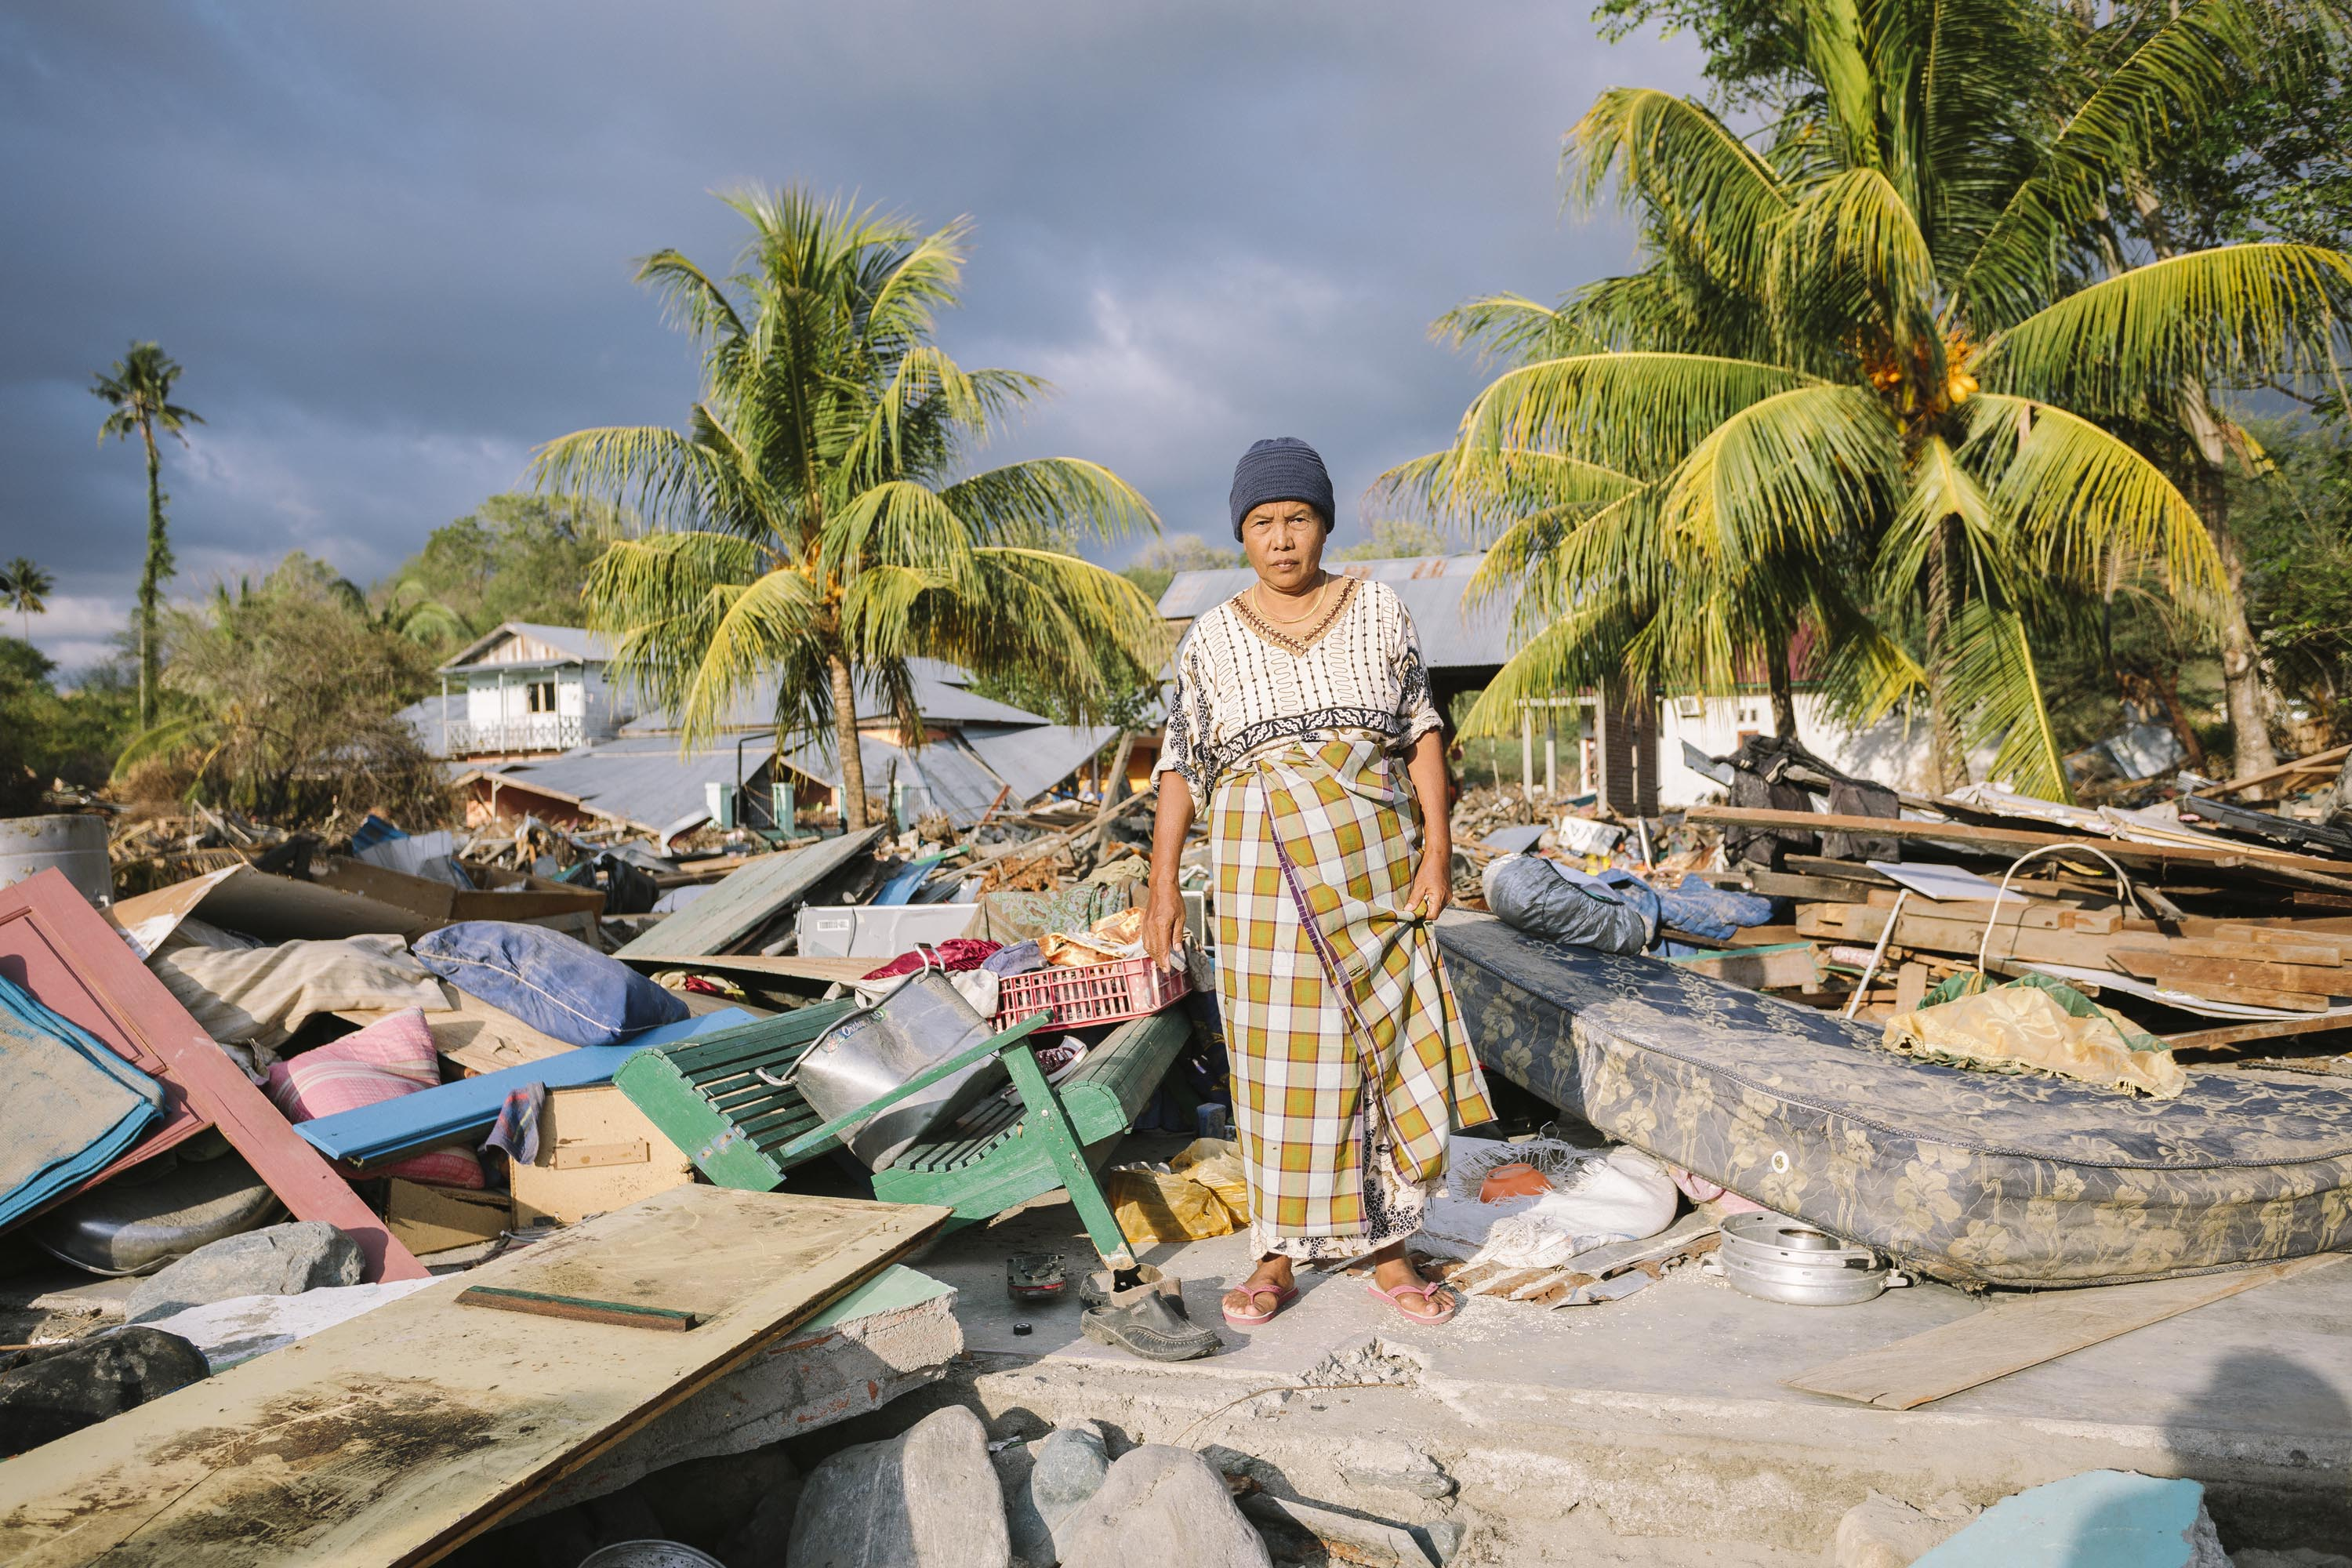 Ernawati, 60, lost everything when the tsunami destroyed her home. She is now living in a small temporary room at her neighbours house. Photo: Benjamin Suomela/Finnish Red Cross